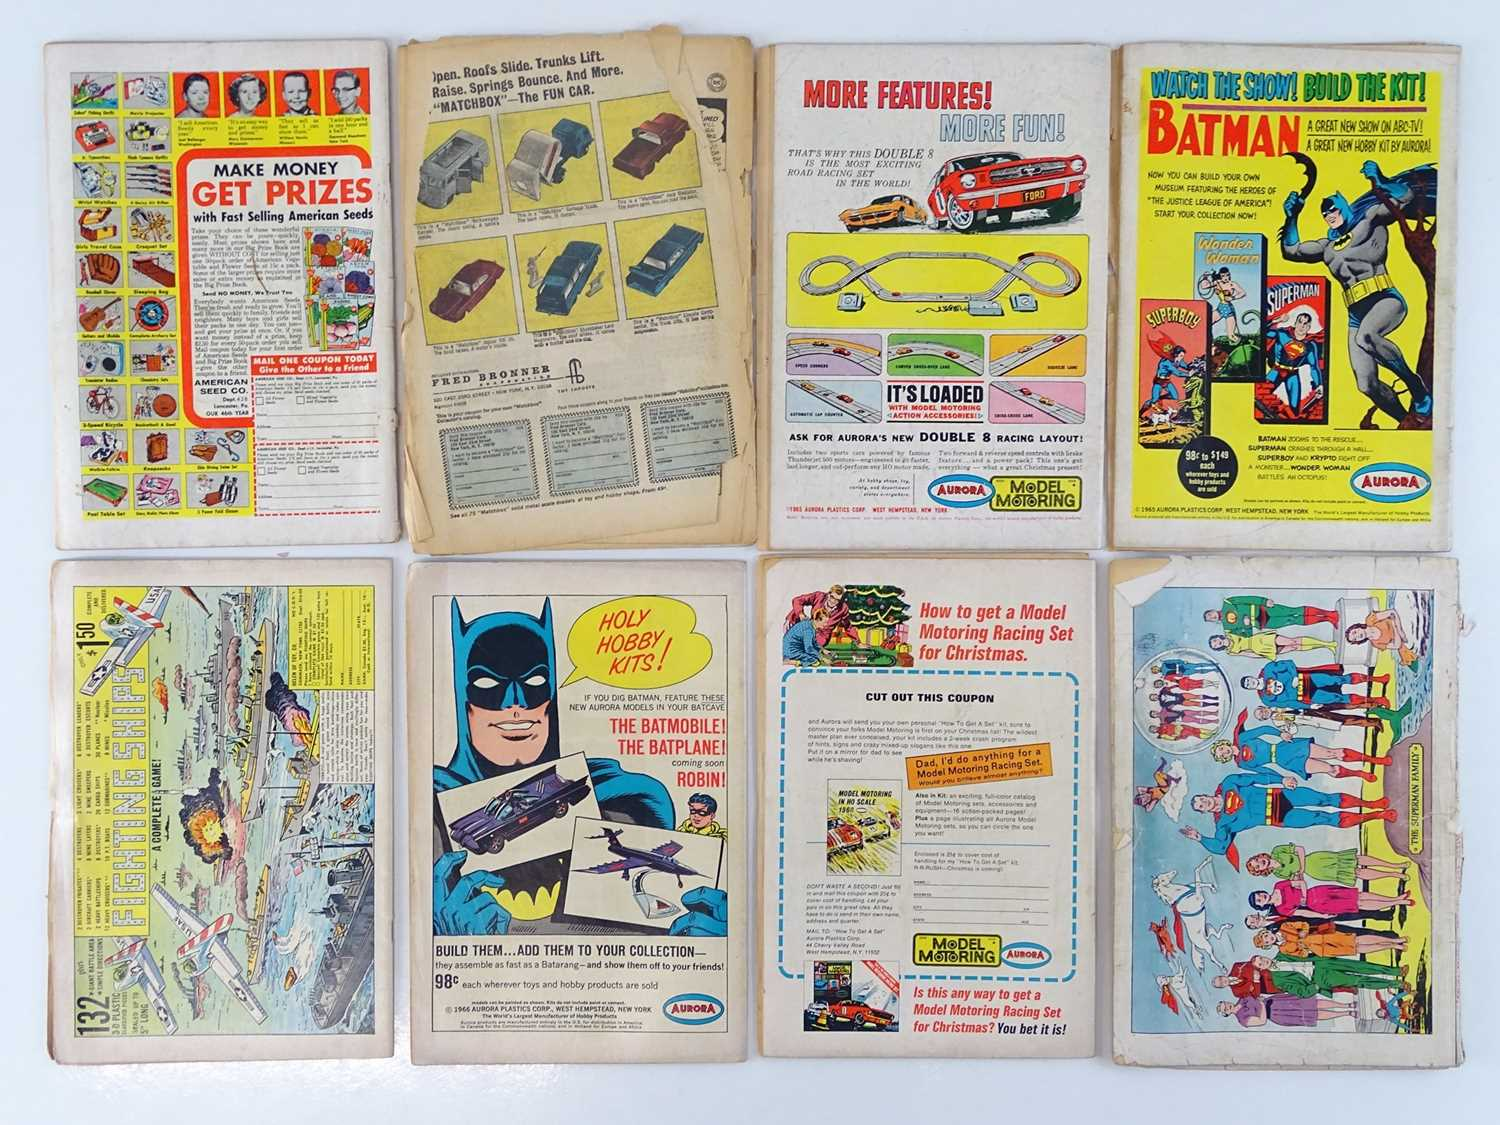 SUPERMAN #169, 183, 184, 186, 188, 190, 192 & GIANT ANNUAL #6 - (8 in Lot) - (1962/67 - DC - UK - Image 2 of 2